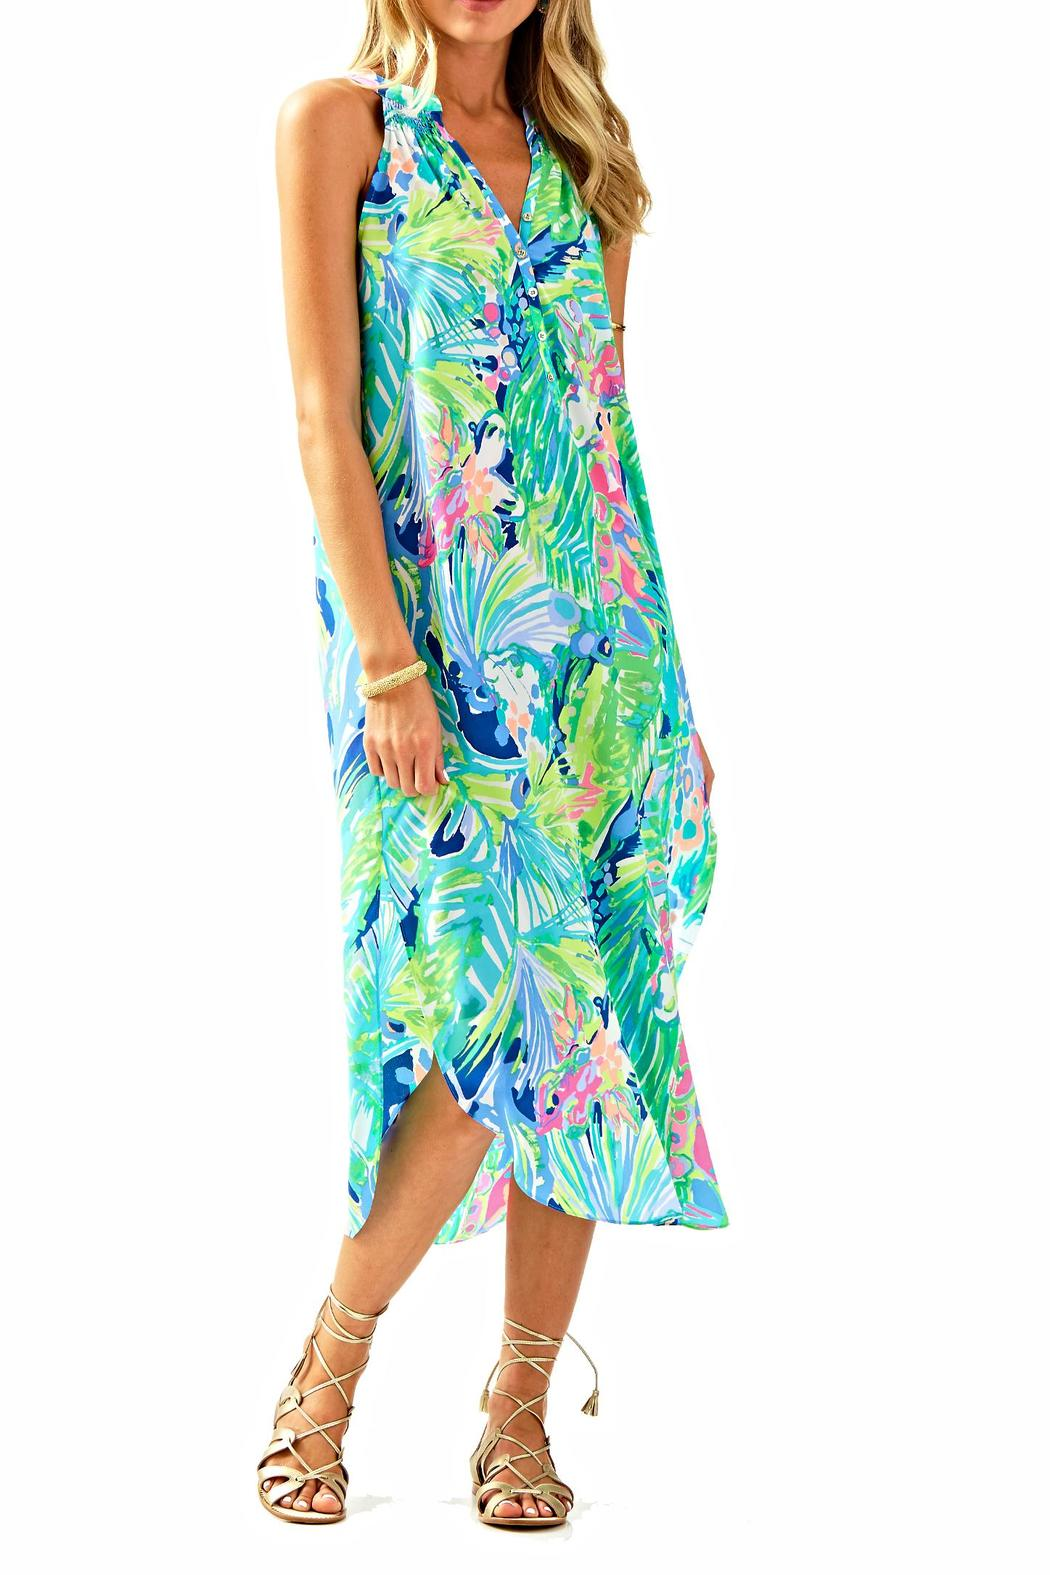 911bff365c9c3 Lilly Pulitzer Bailey Midi Dress from Sandestin Golf and Beach ...